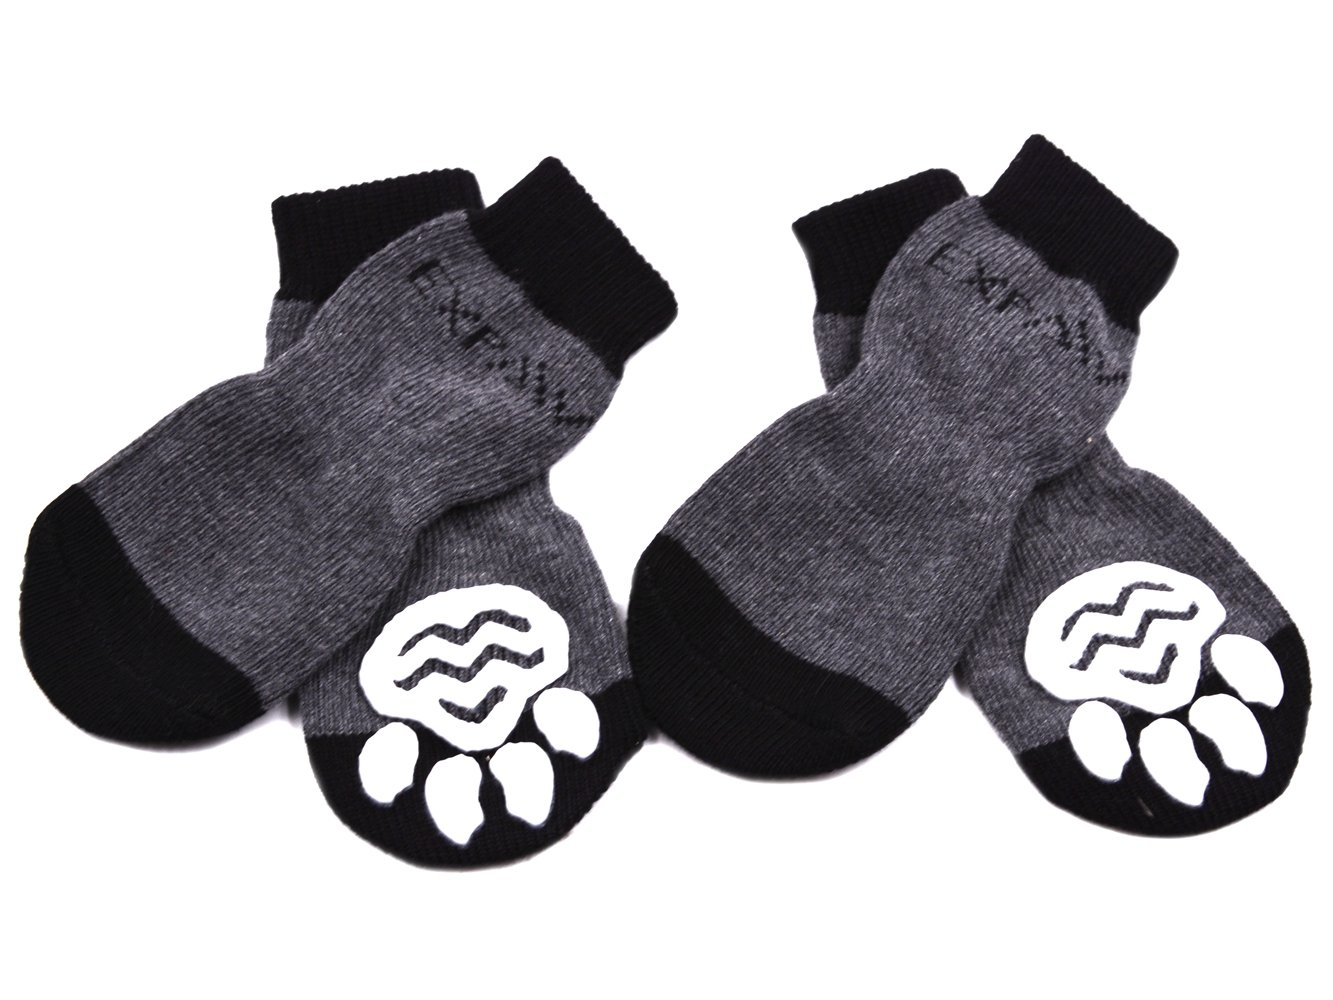 EXPAWLORER Anti-Slip Dog Socks